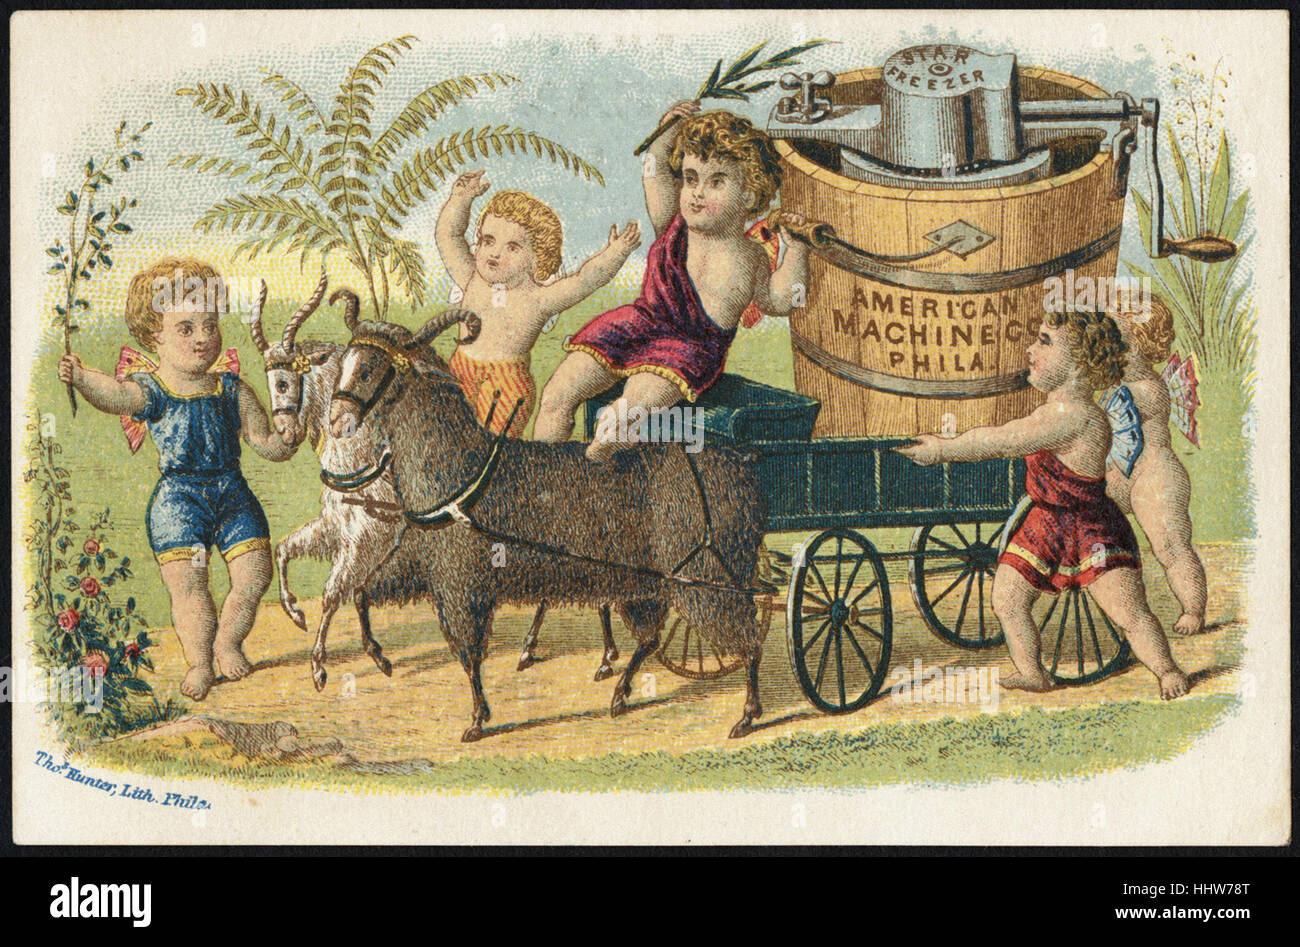 American Machine Co., Phila. The Star Ice Cream Freezer' (front)  - Home Furnishings Trade Cards - Stock Image